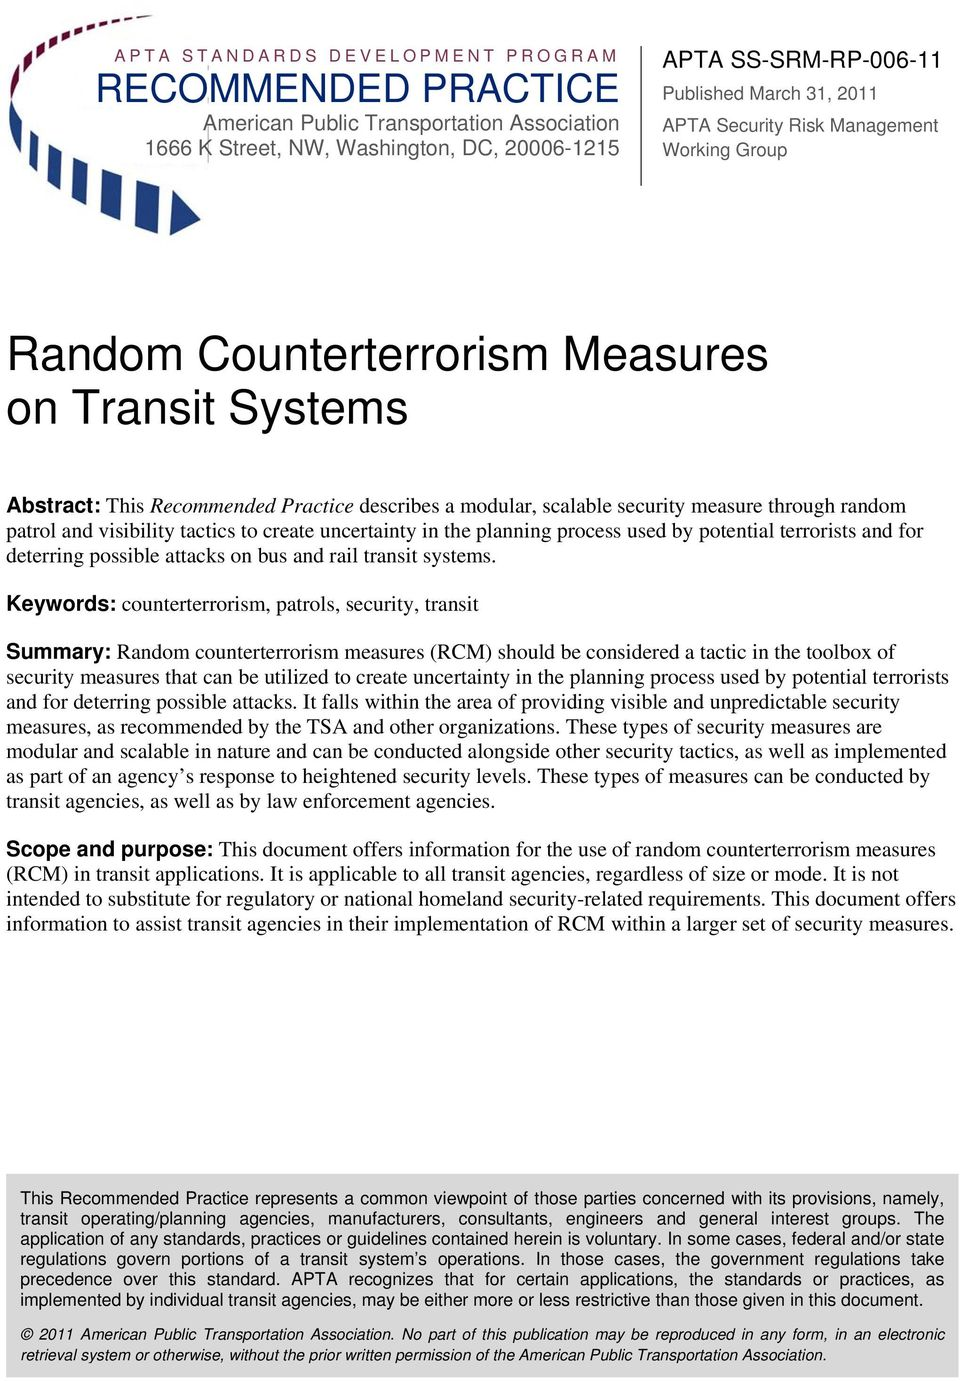 visibility tactics to create uncertainty in the planning process used by potential terrorists and for deterring possible attacks on bus and rail transit systems.